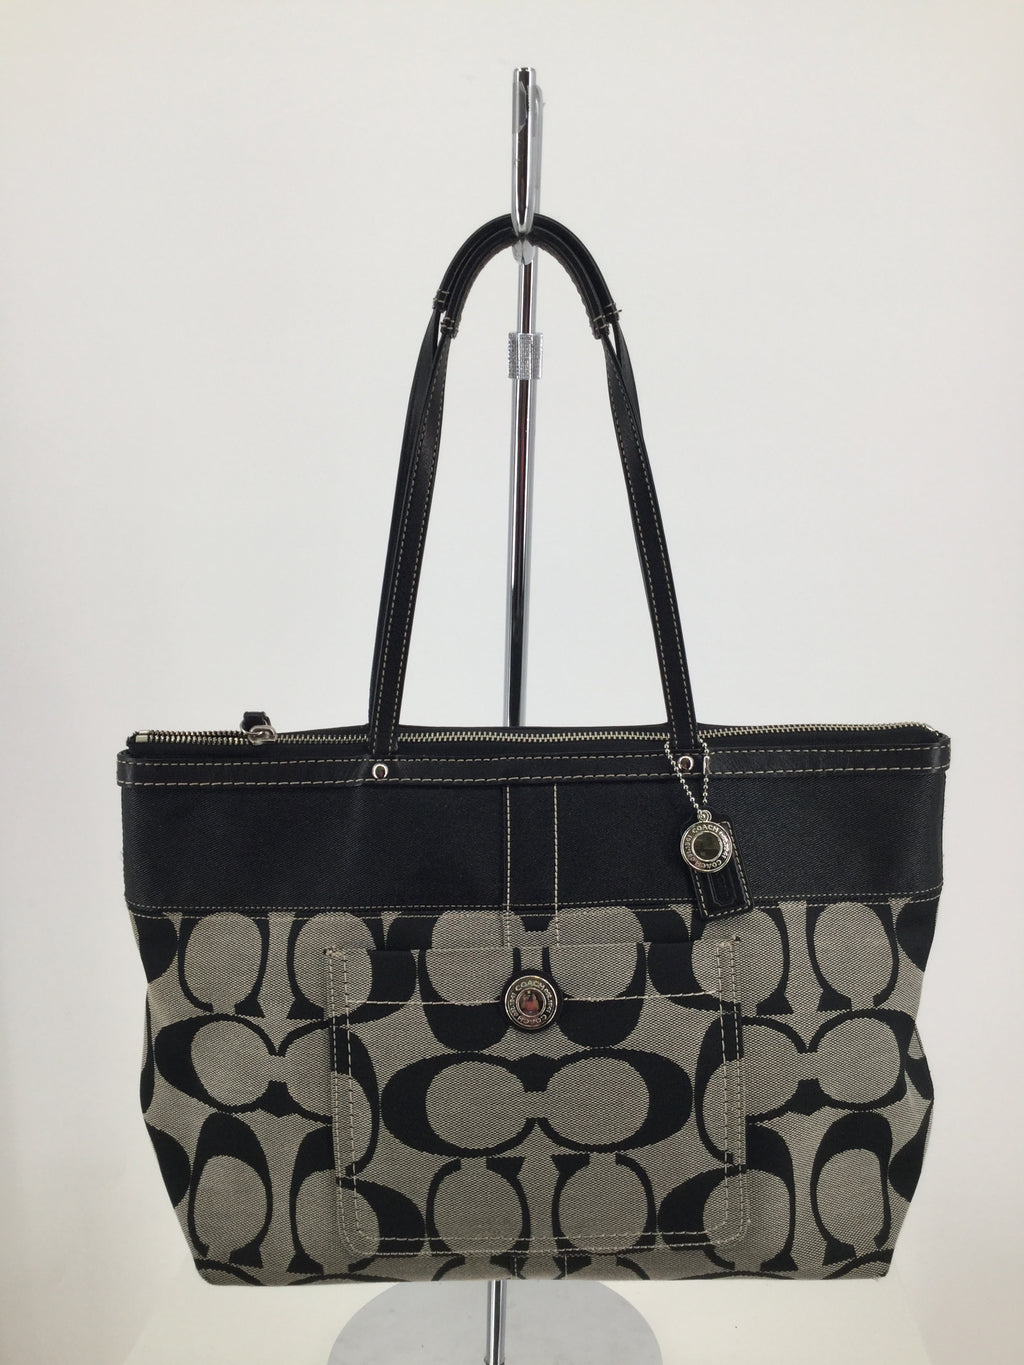 Coach Designer Handbag, Black, Large